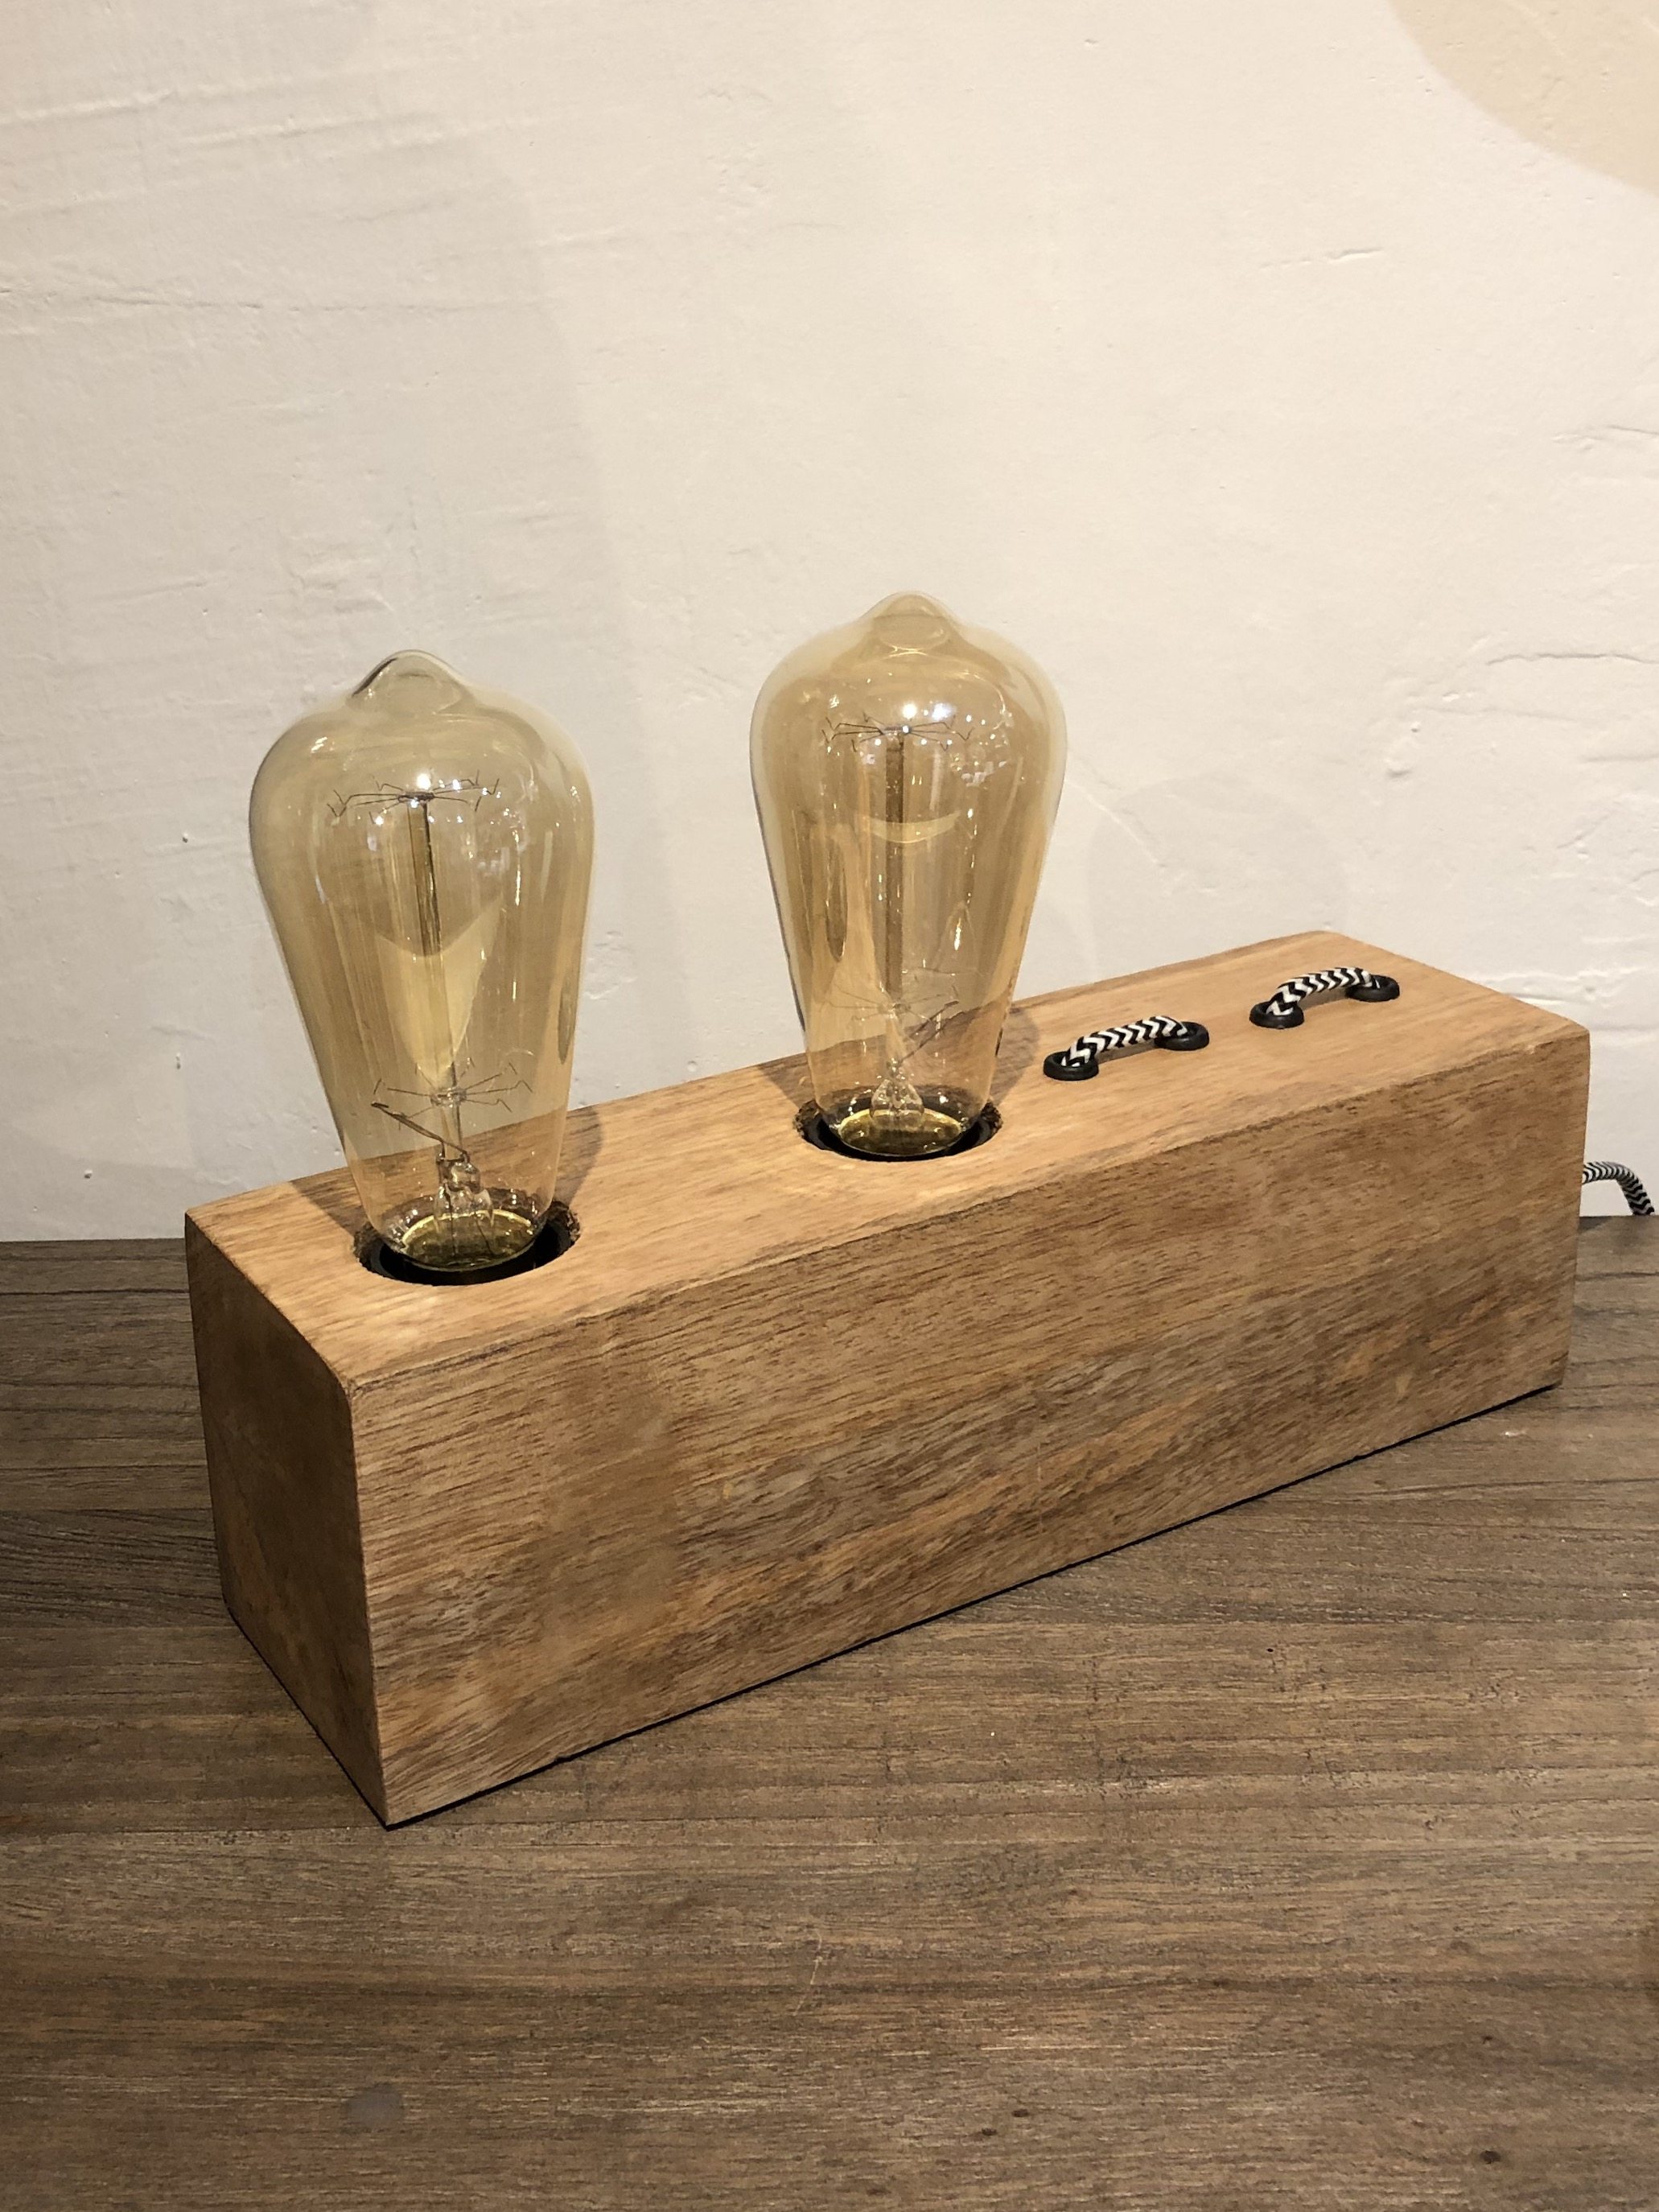 Block light A simple design that looks great in a rustic or industrial interior. A block of wood with retro black and white cabling takes two bulbs. Also available as a single light. £58